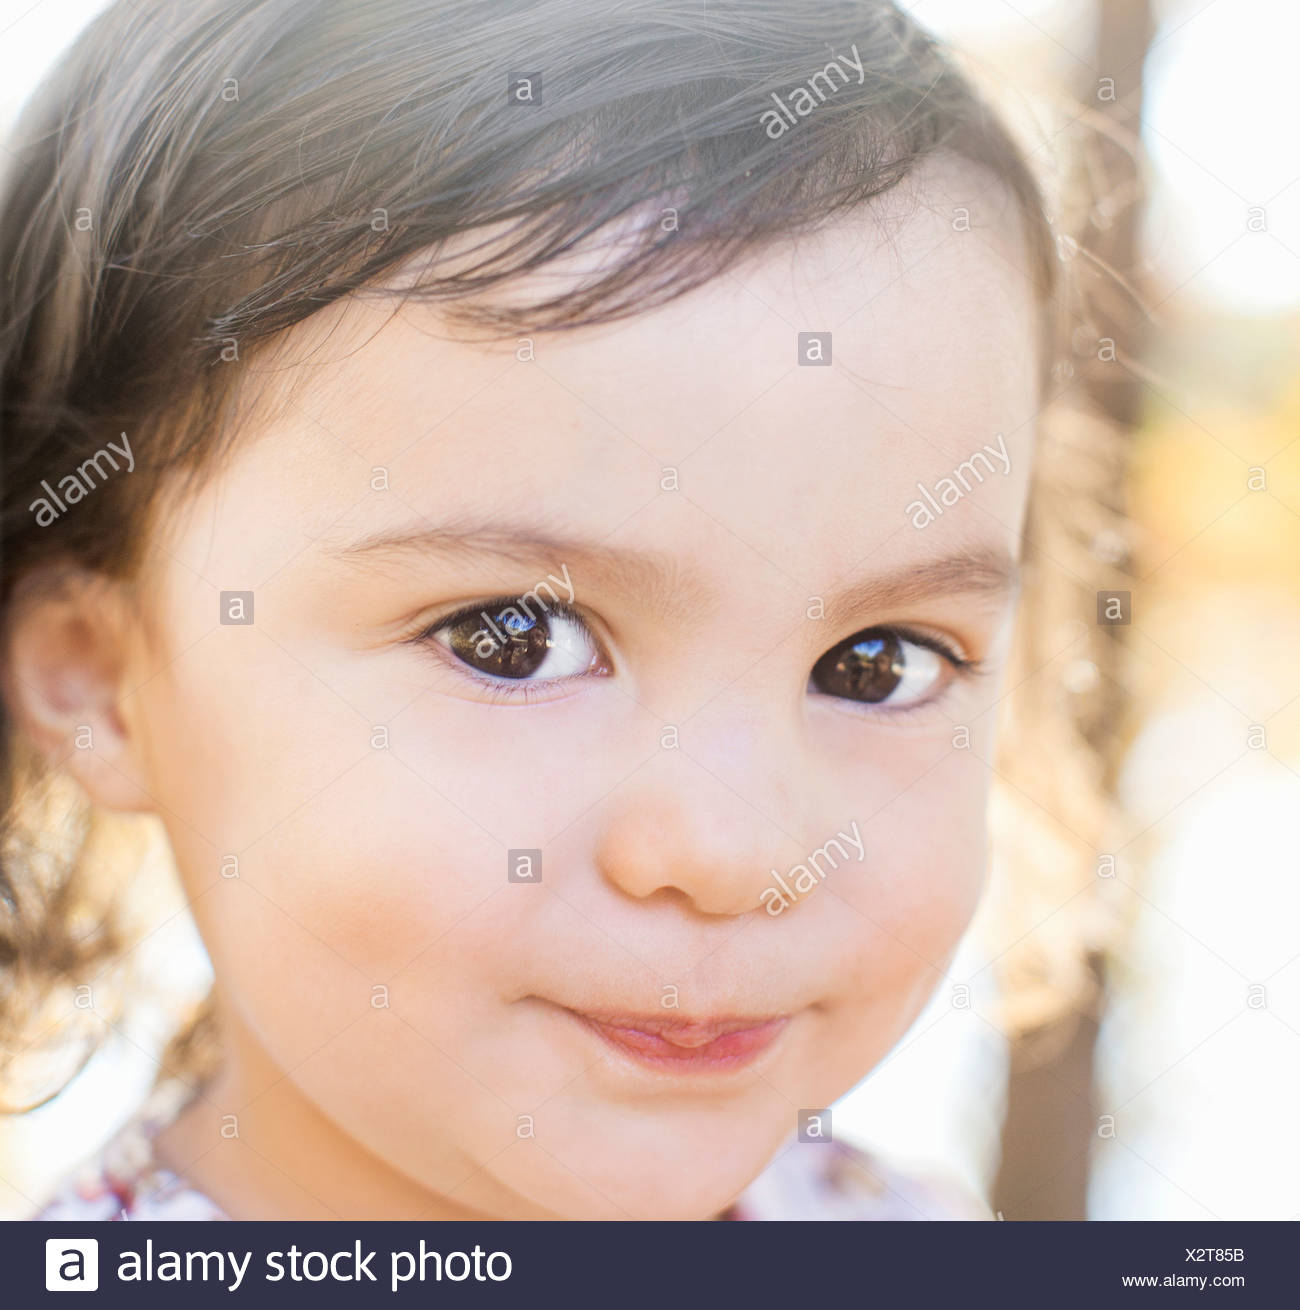 Child with charming smile - Stock Image